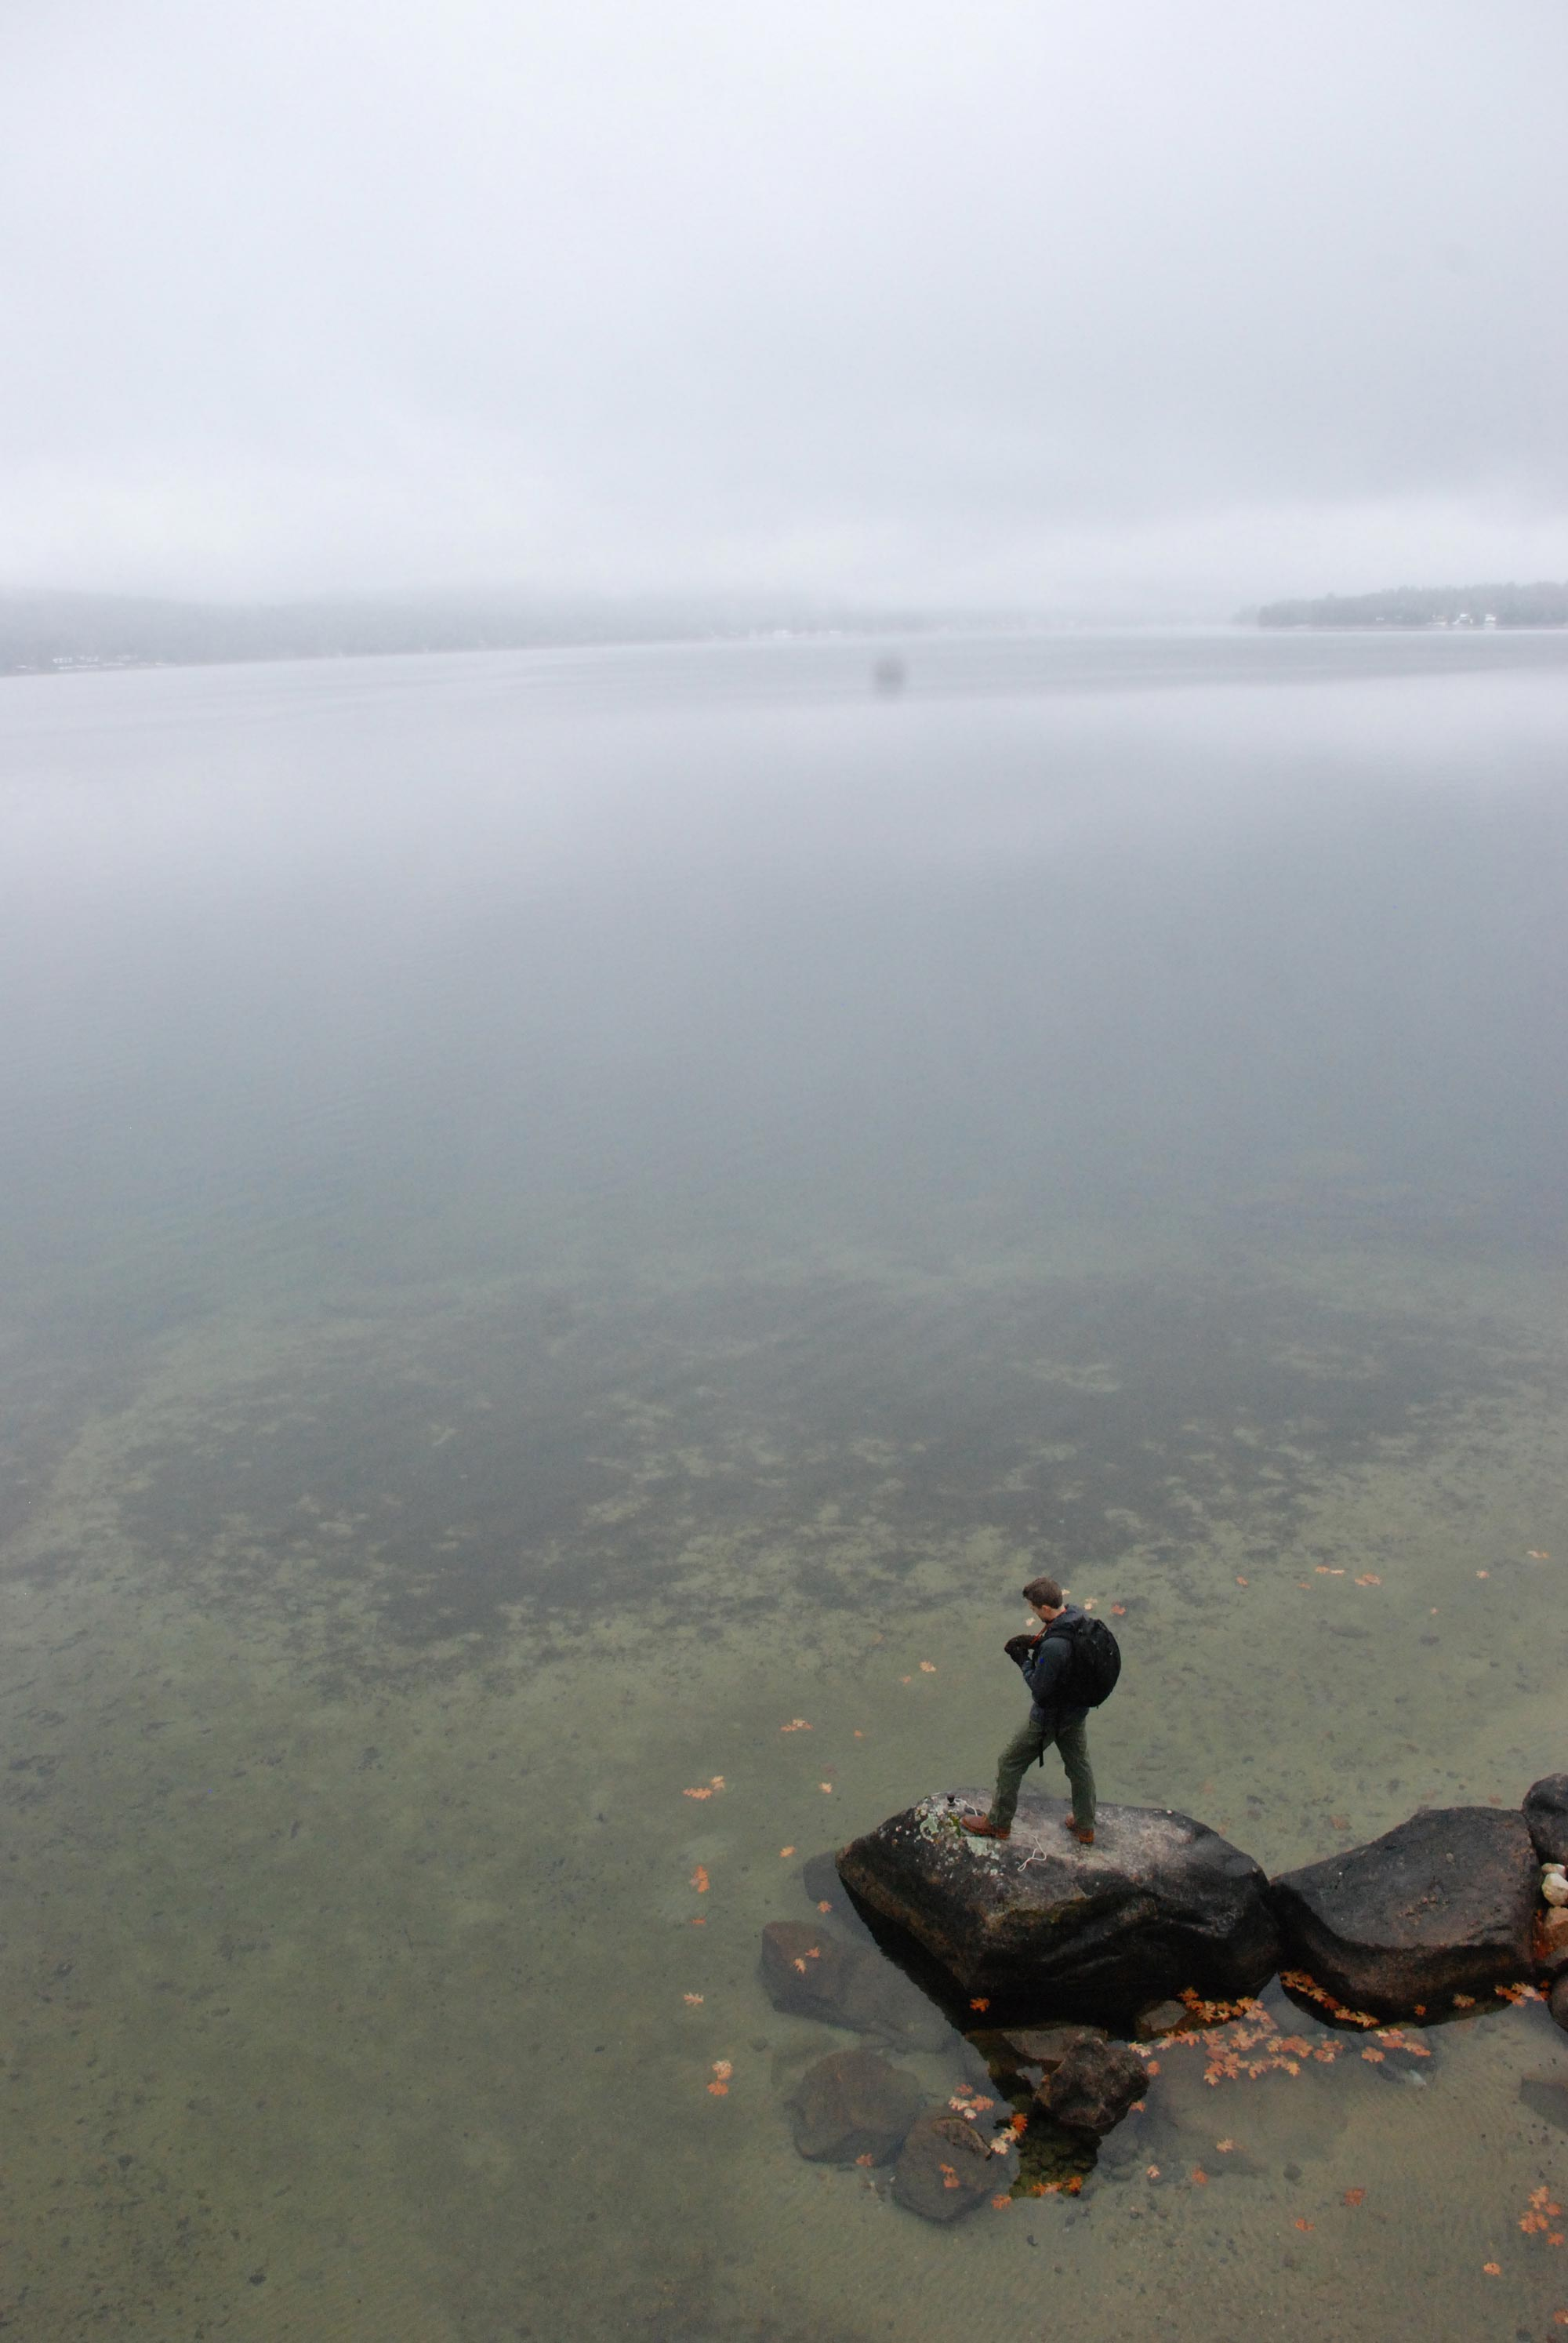 A man stands at the edge of a misty lake, with compass in hand.